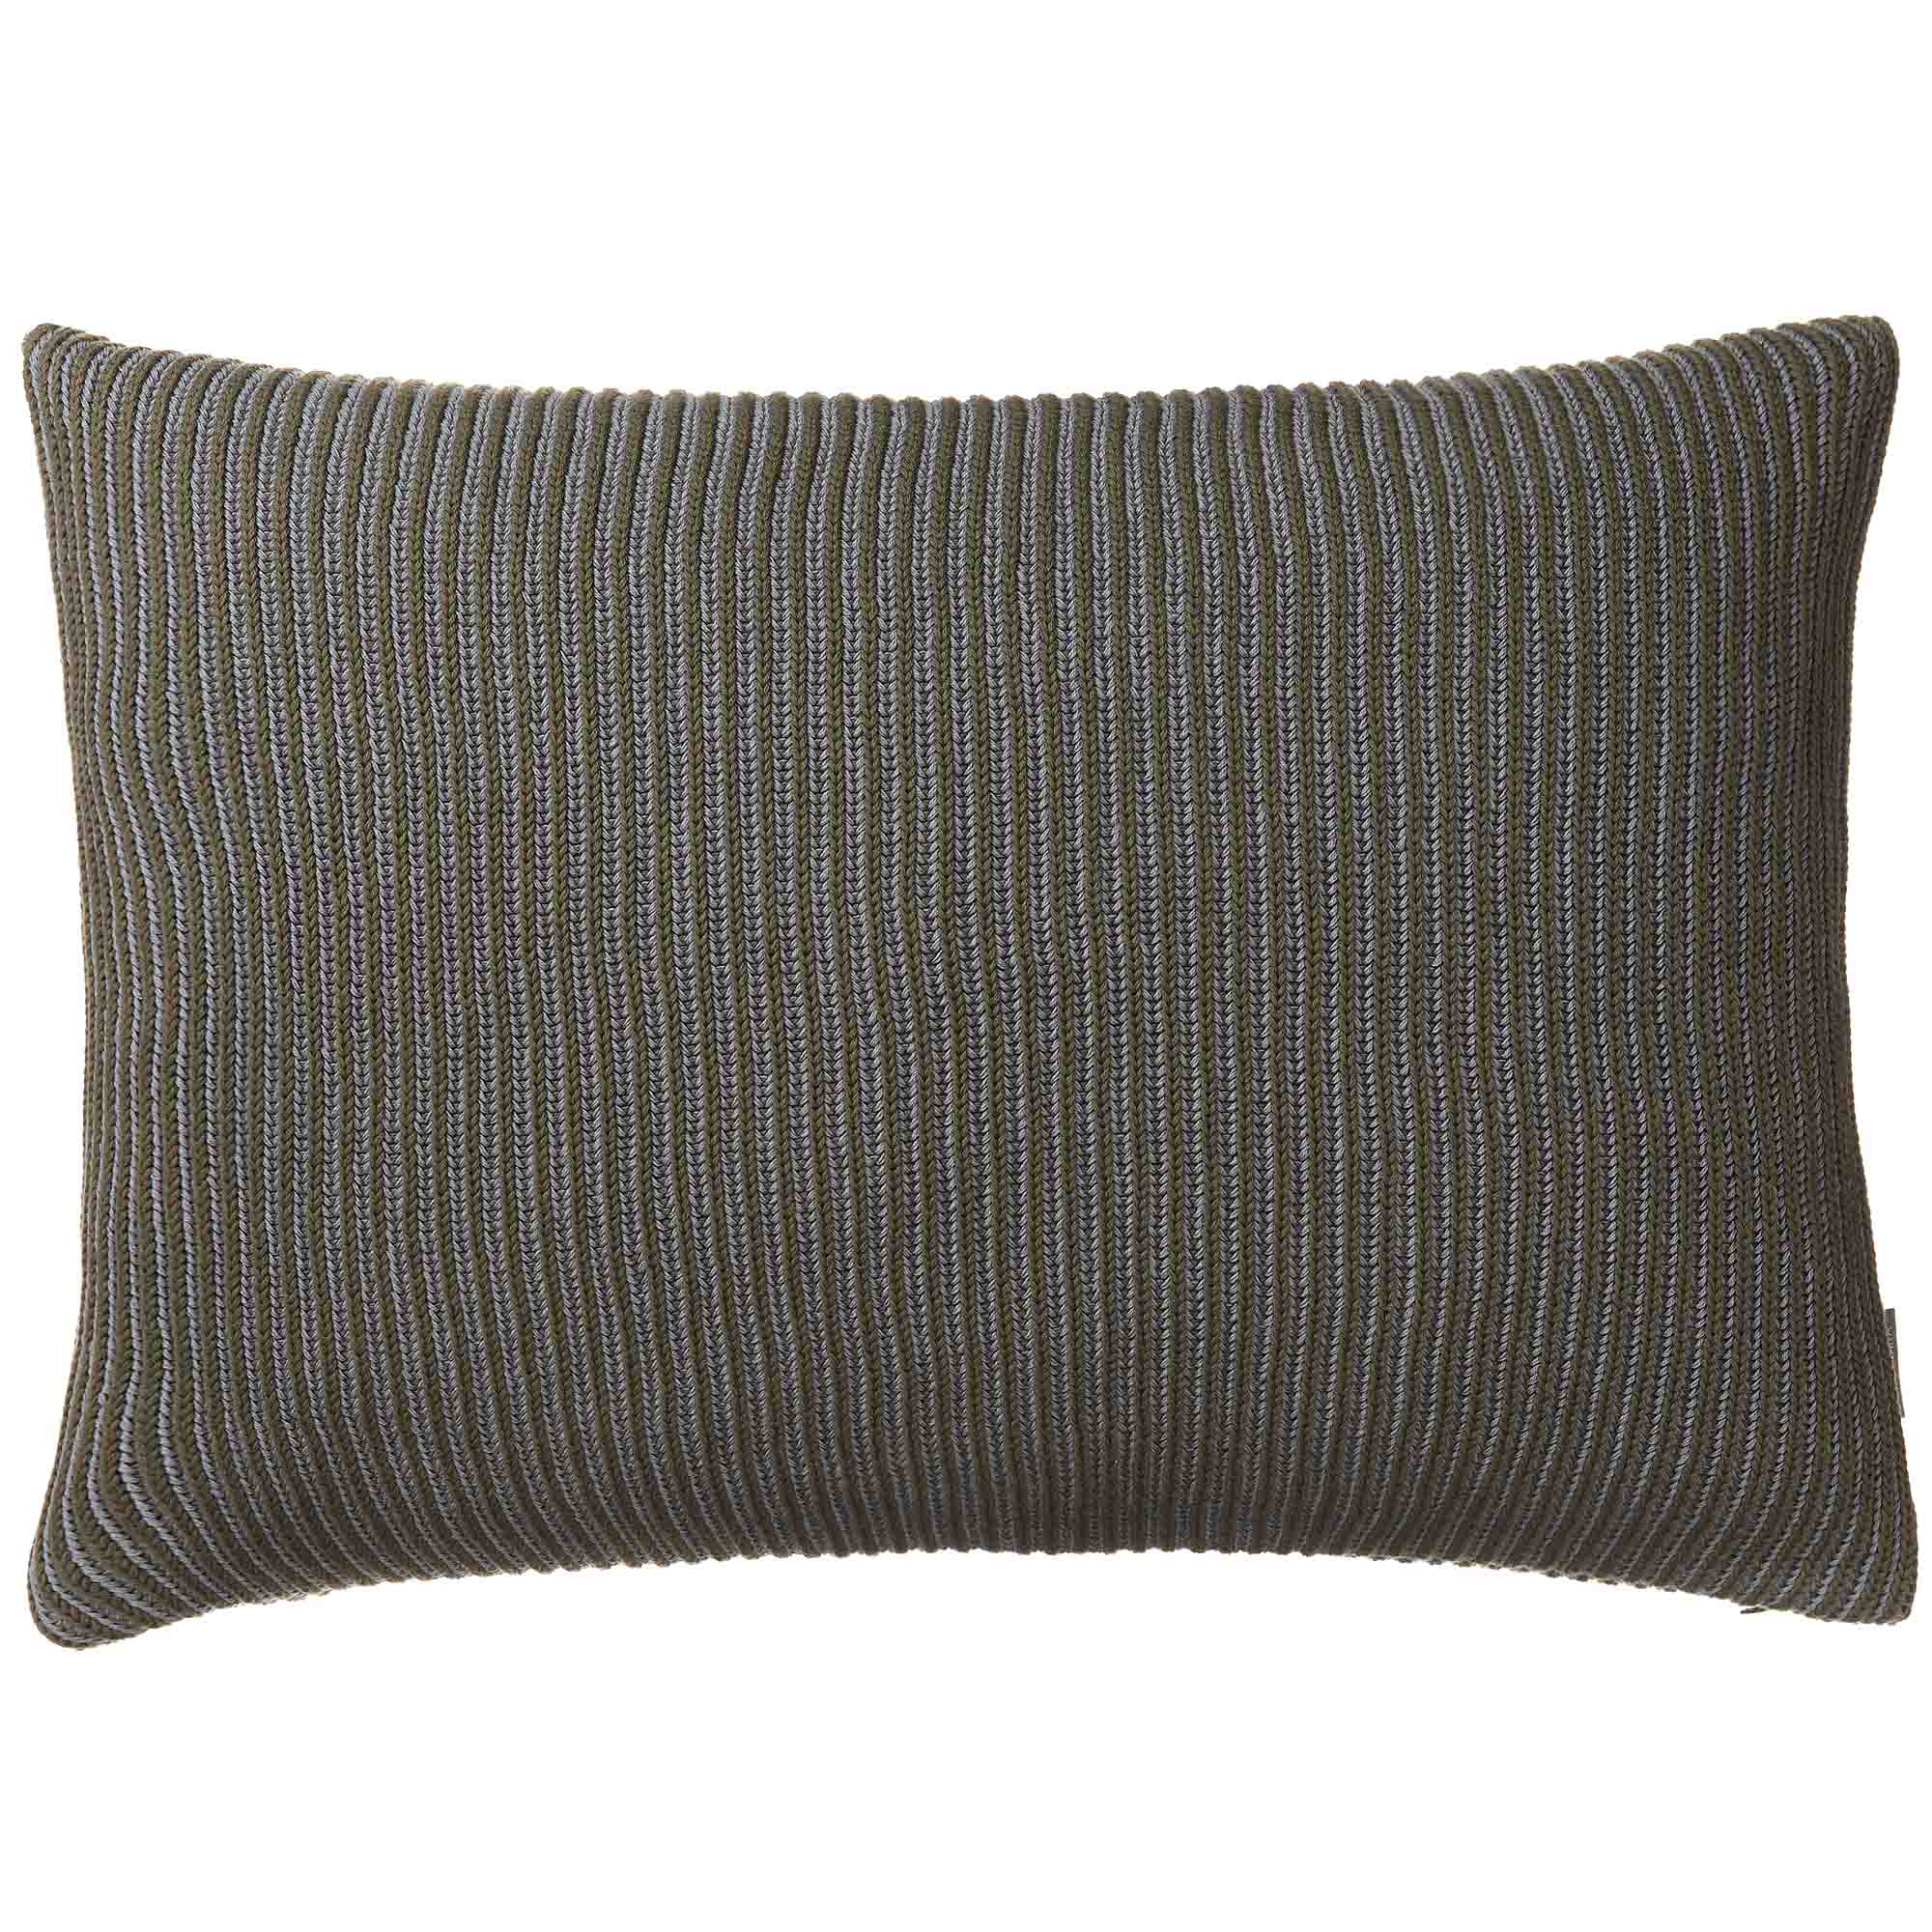 Azoia cushion cover, olive green & silver grey, 100% organic cotton